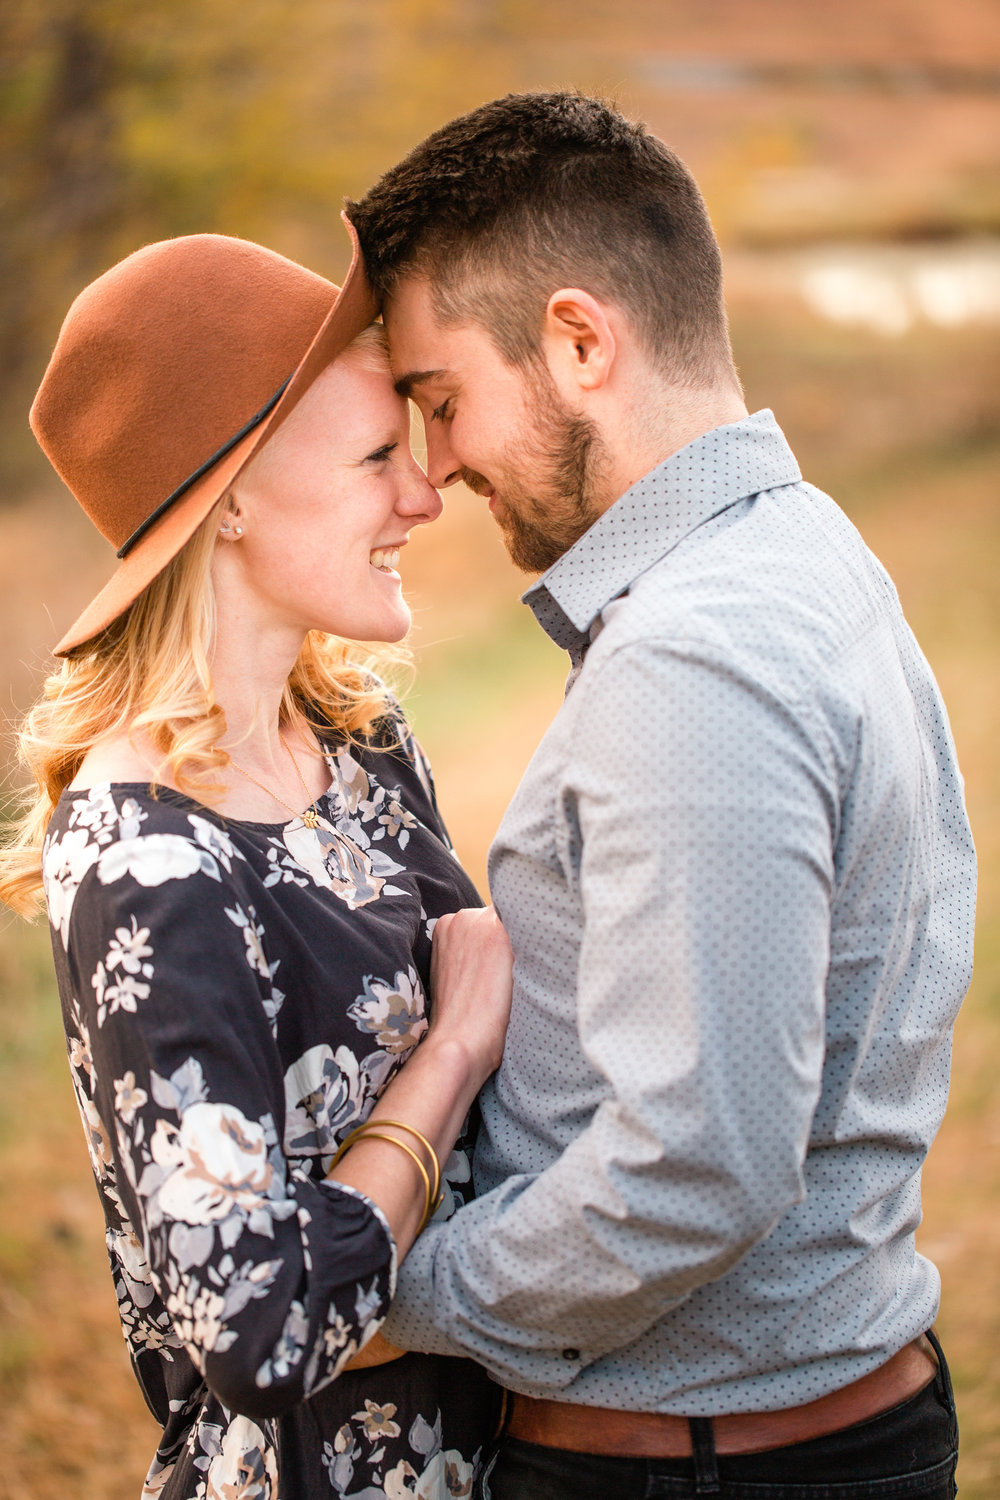 couple first wedding anniversary pictures in park in fall wearing nice outfits cute hat